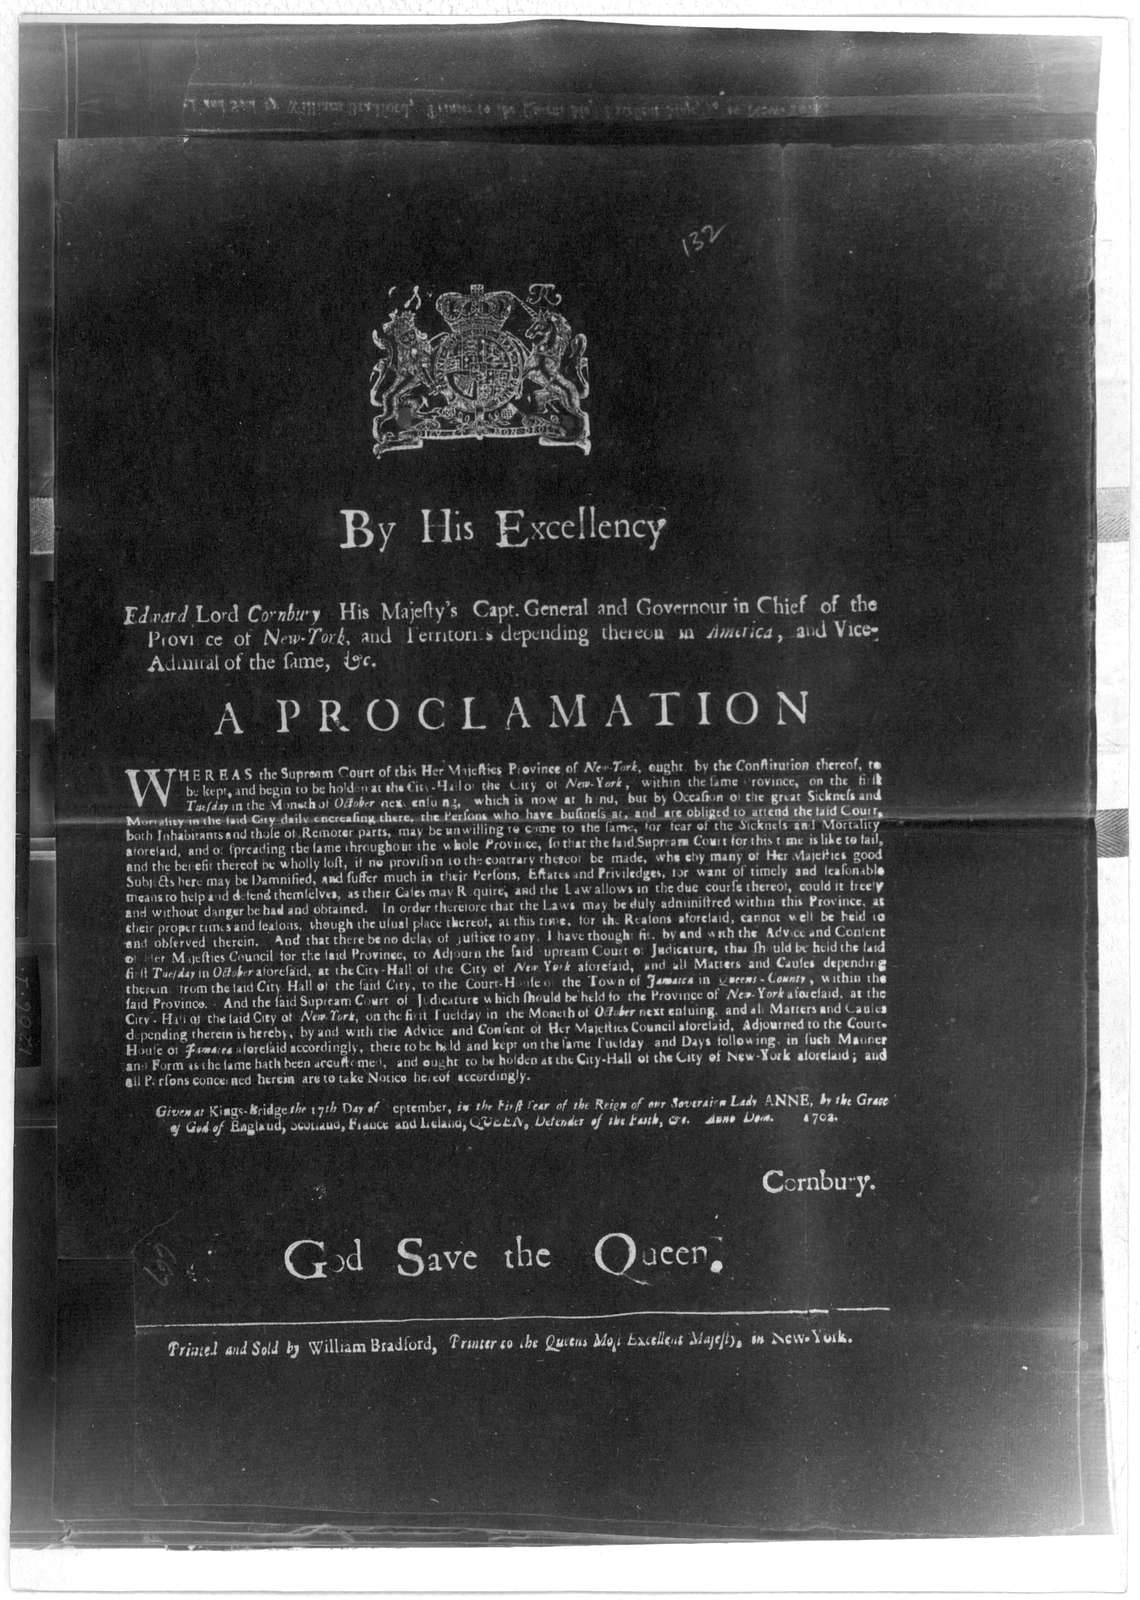 By His Excellency Edward Lord Cornbury, His Majesty's Capt. General and Governour in chief of the Province of New York ... A proclamation. Whereas the Supreme Court of Her Majesties Province of New York ought by the constitution, there of to be